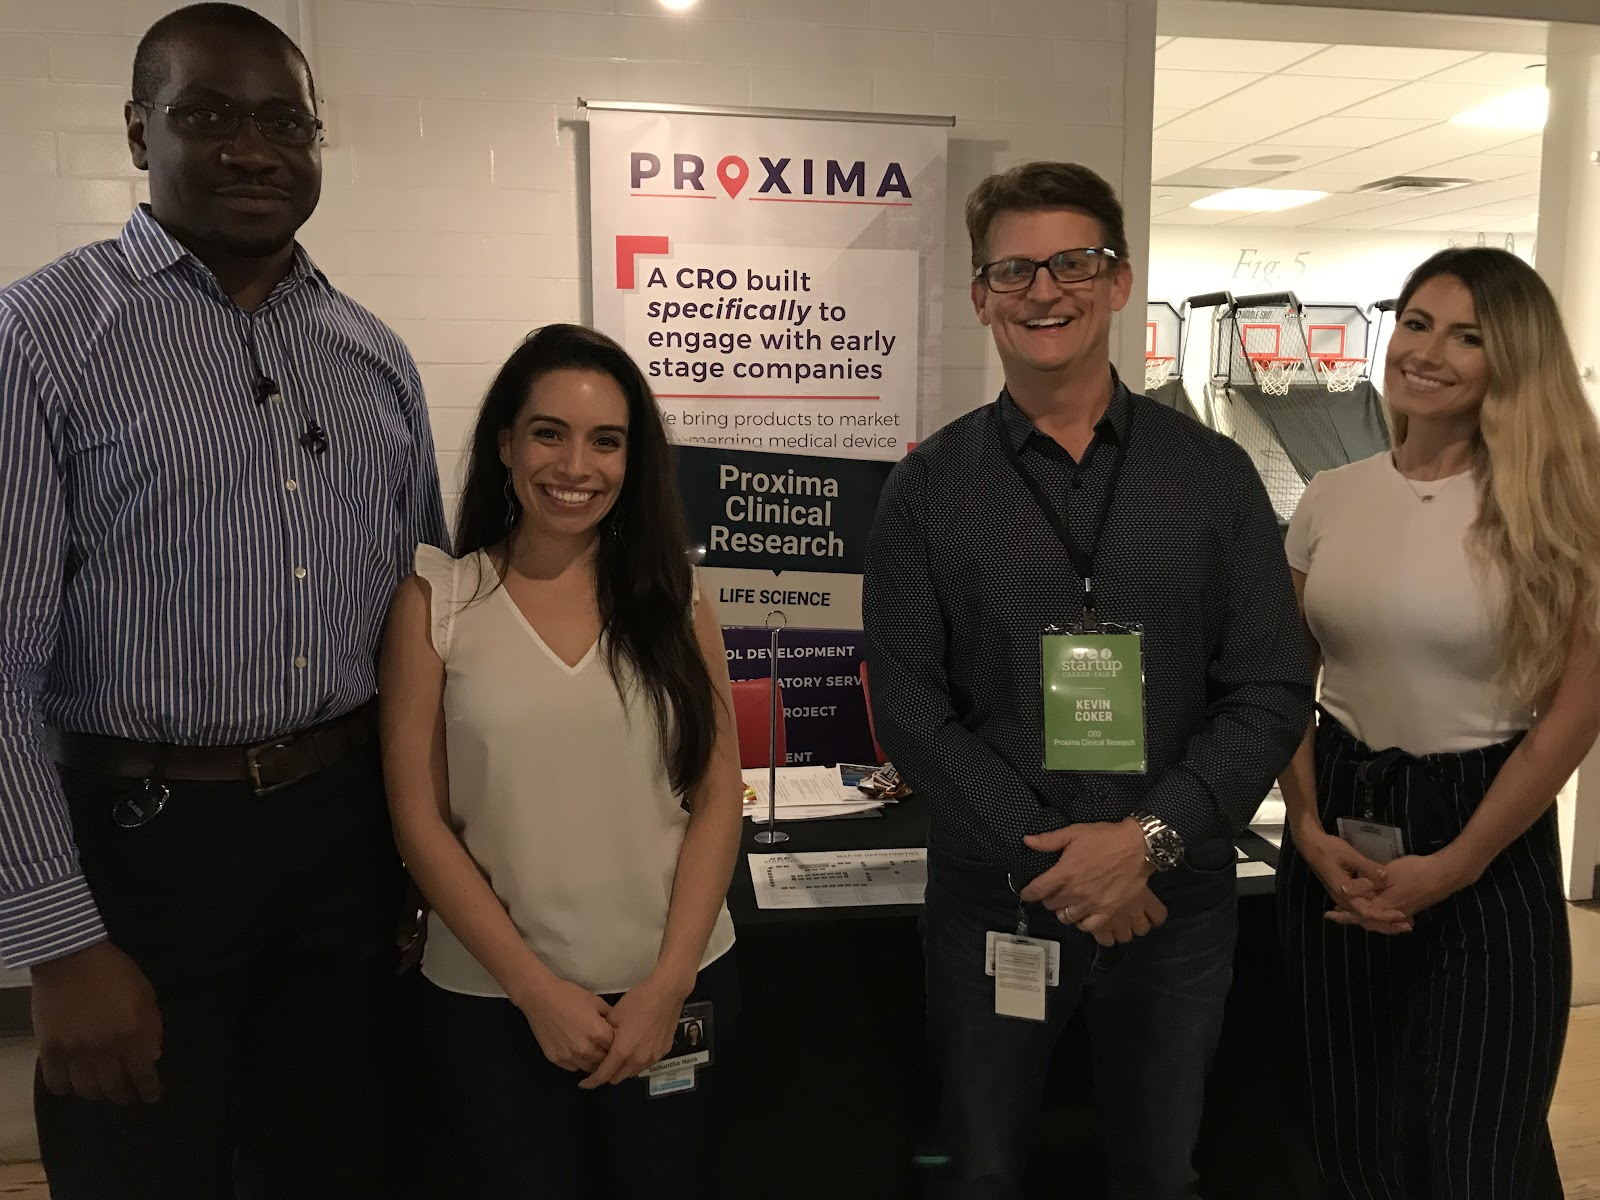 Proxima Clinical Research's team gathers for a group photo